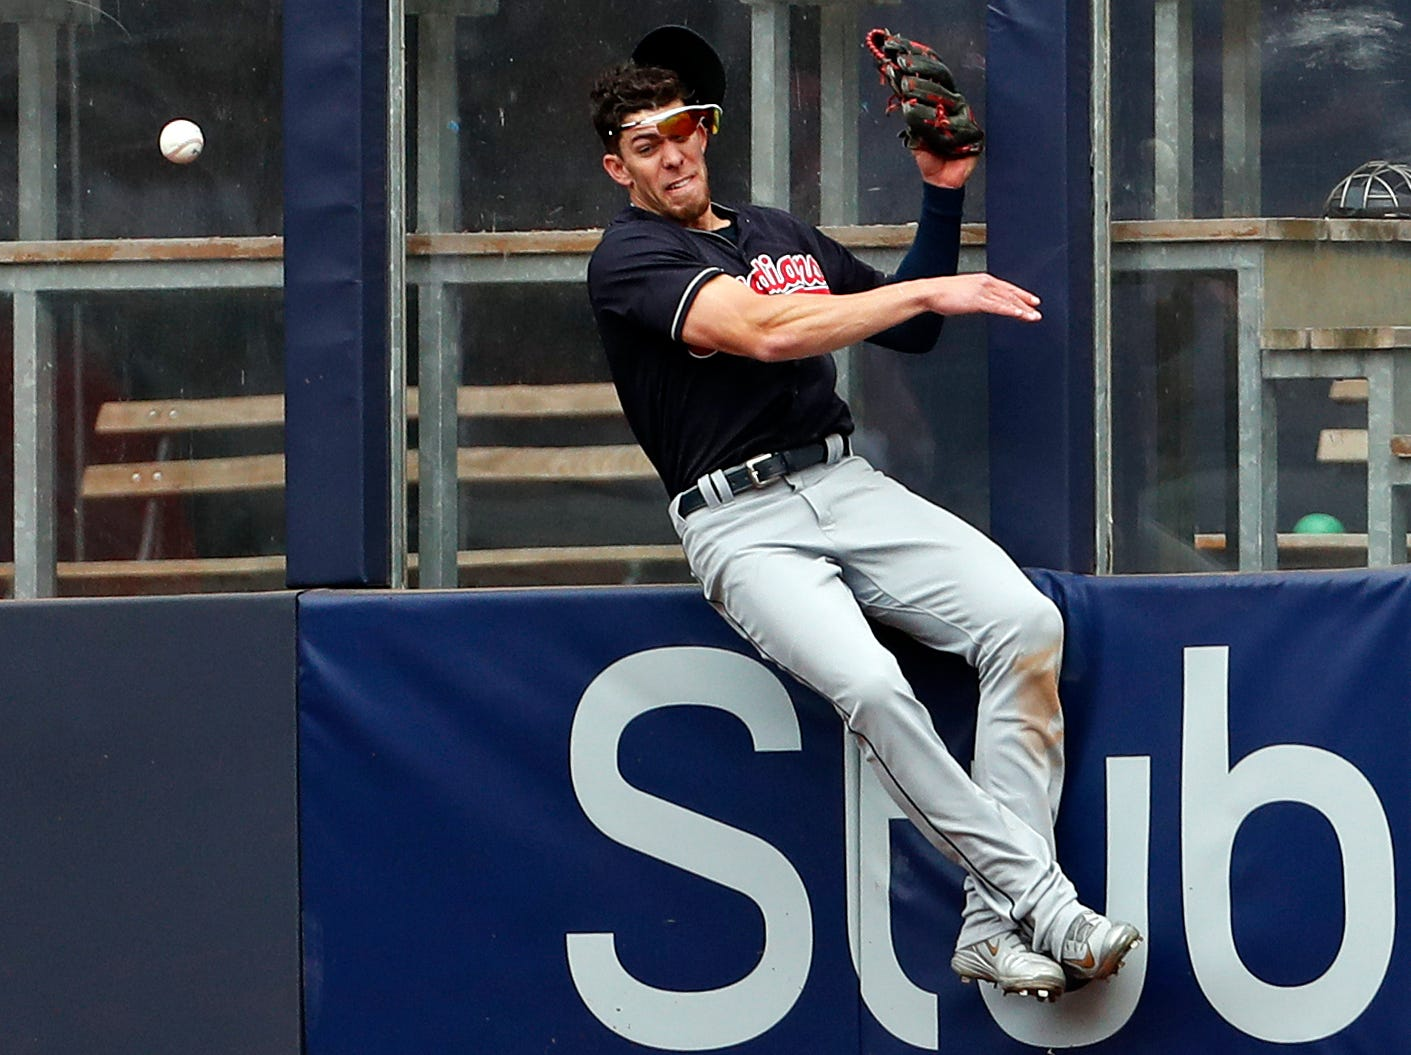 May 5: Cleveland Indians center fielder Bradley Zimmer collides with the wall while attempting to make a catch against the New York Yankees.